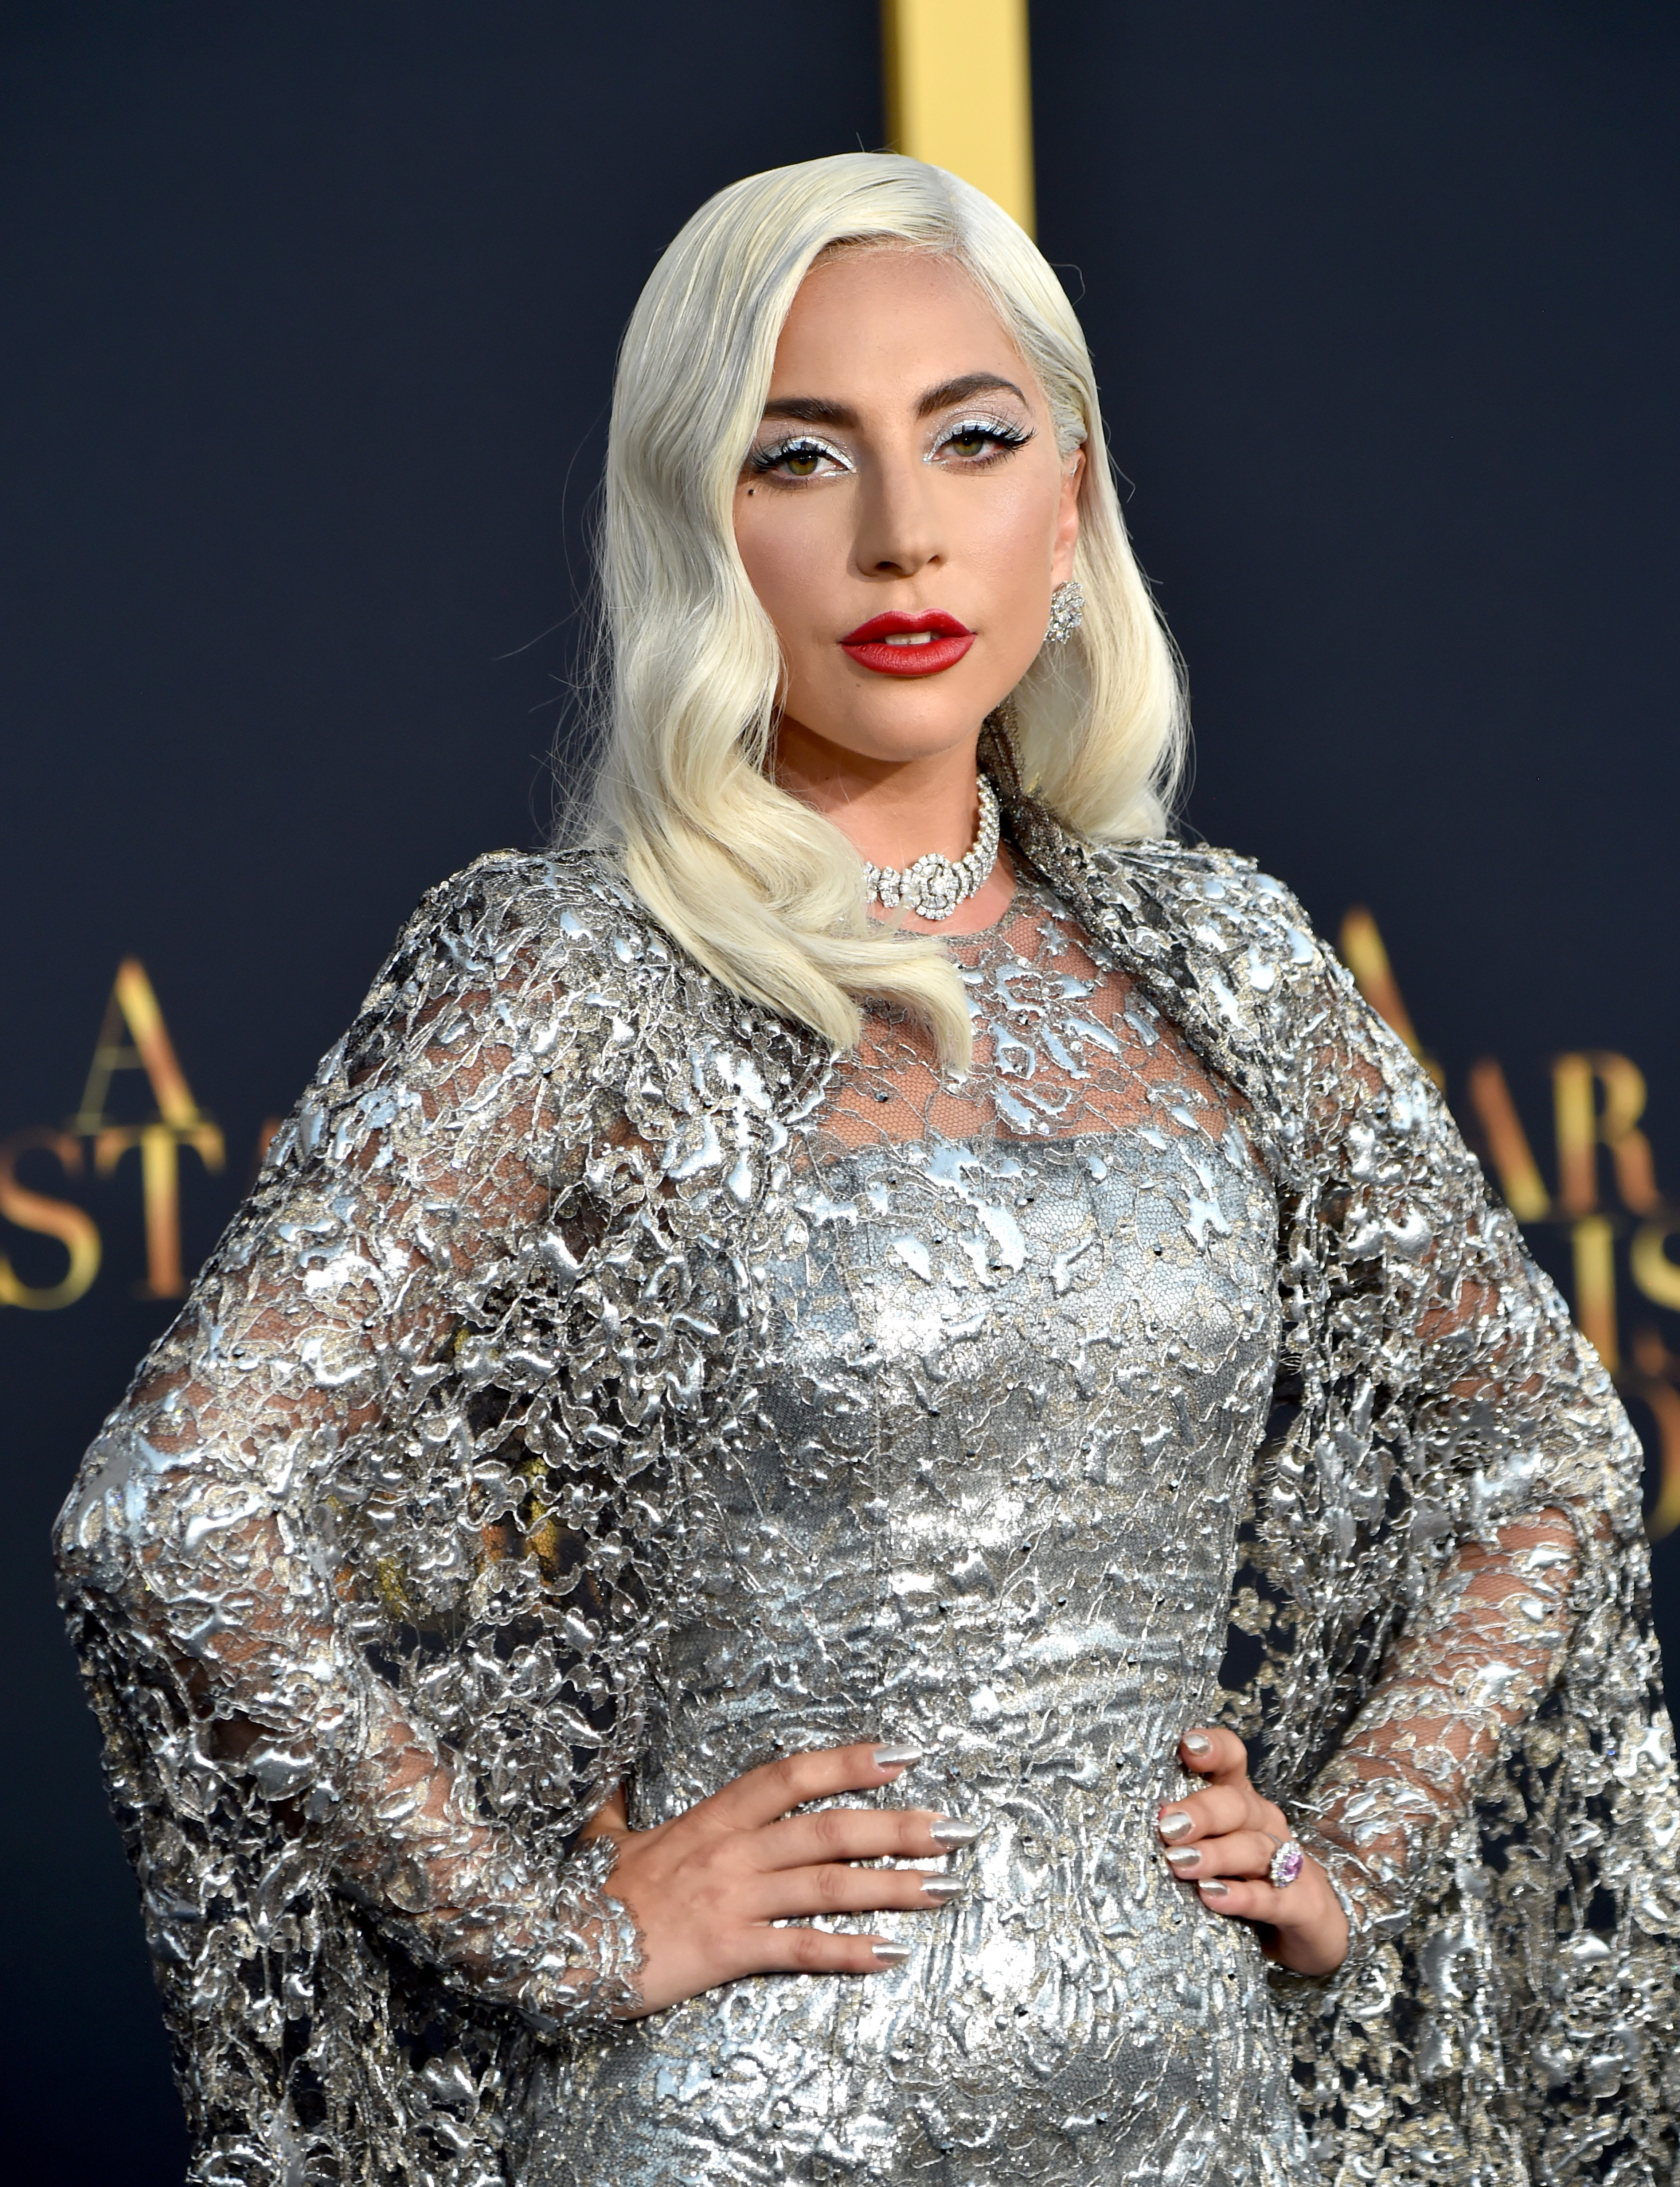 Lady Gaga attends the premiere of Warner Bros. Pictures' 'A Star Is Born' at The Shrine Auditorium on September 24, 2018, in Los Angeles, California. | Source: Getty Images.